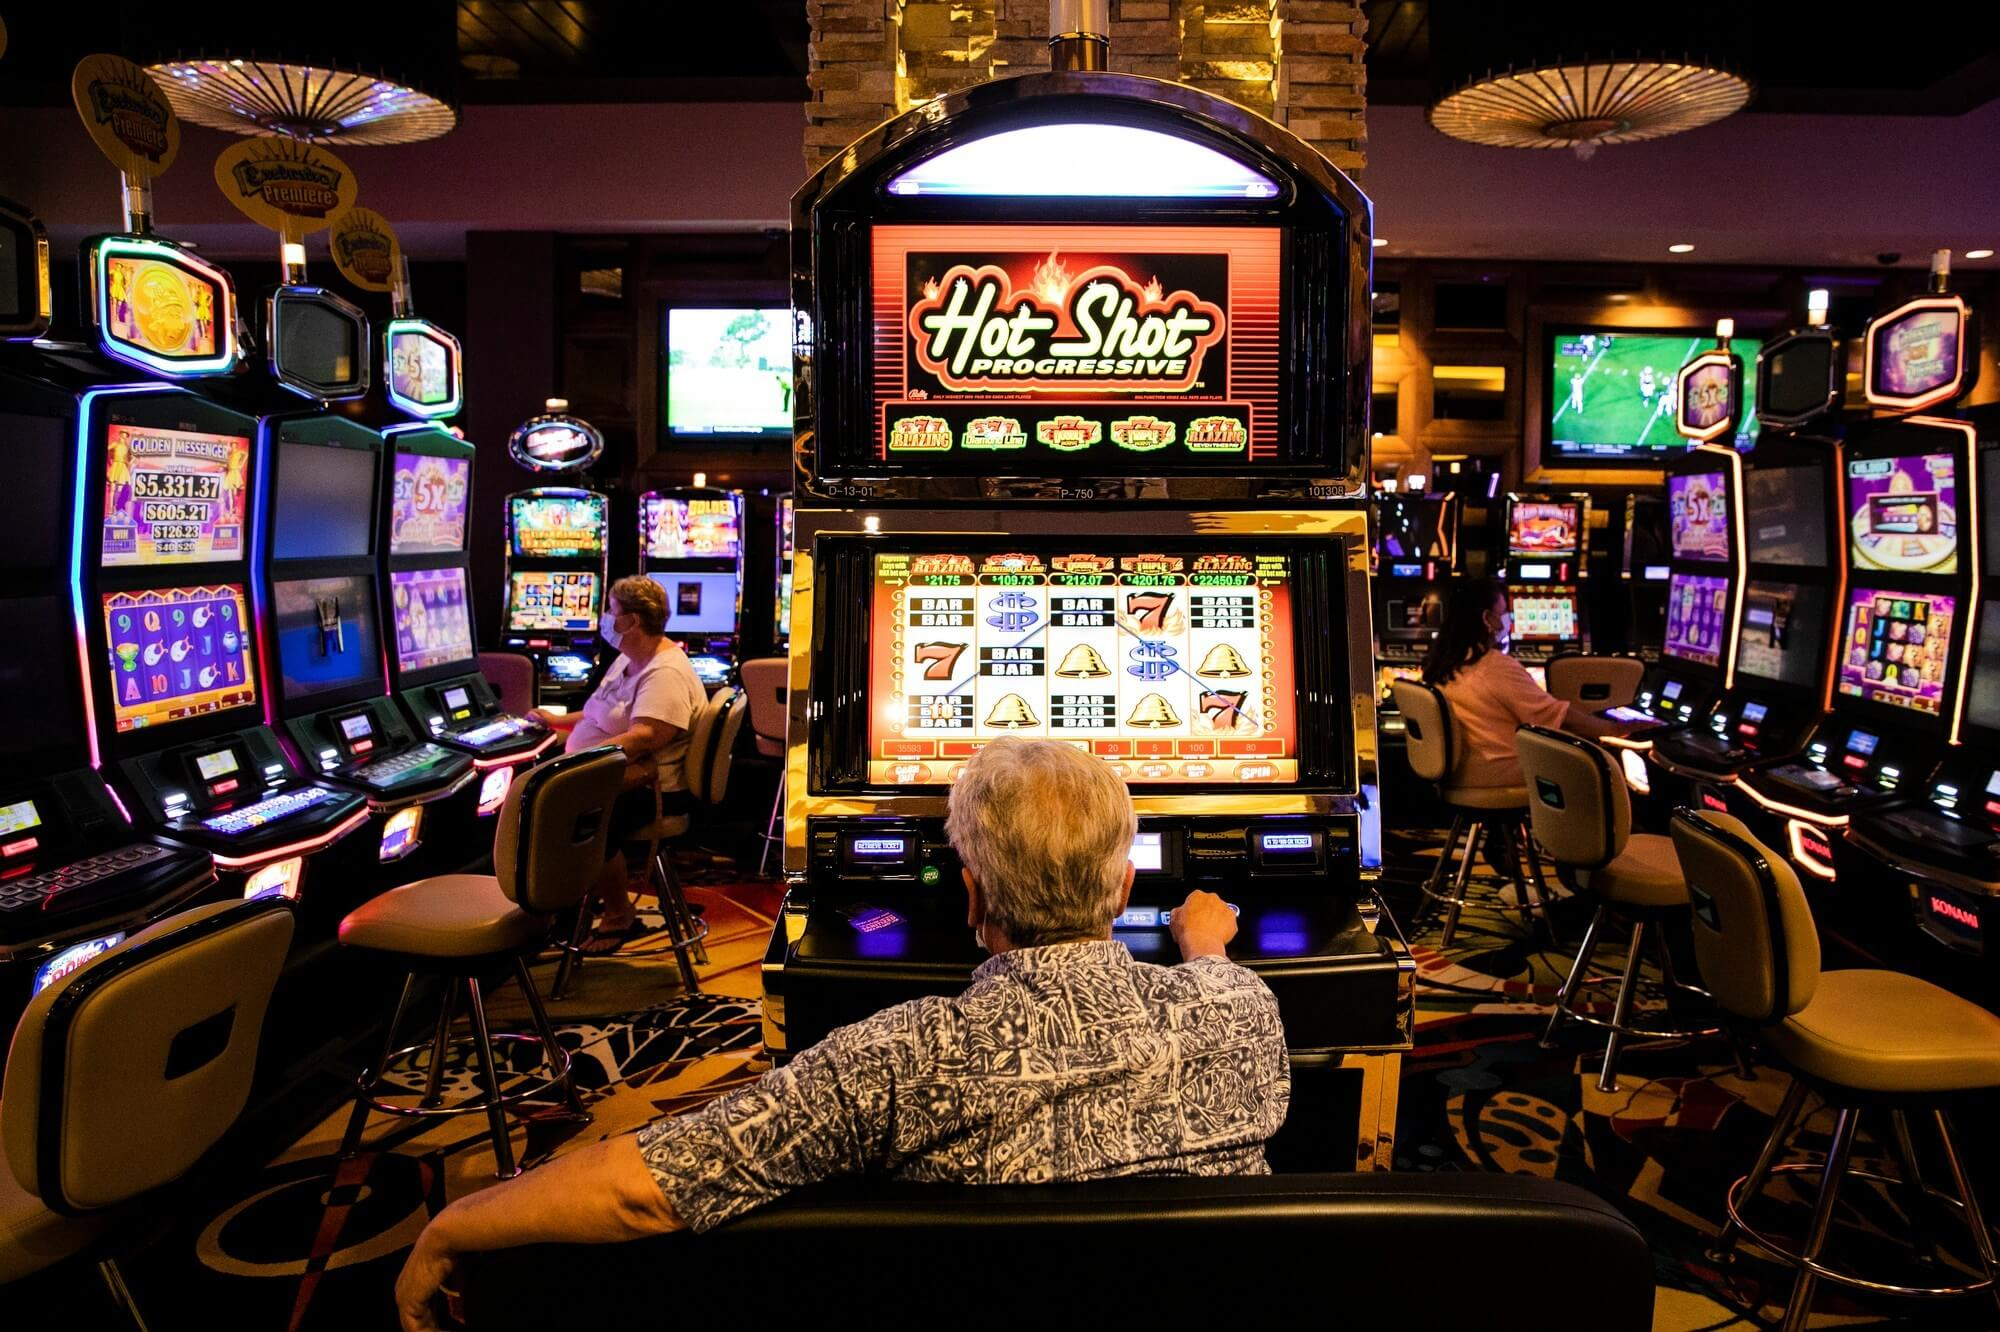 3 MAIN CASINO GAMES THAT ARE OFTEN PLAYED